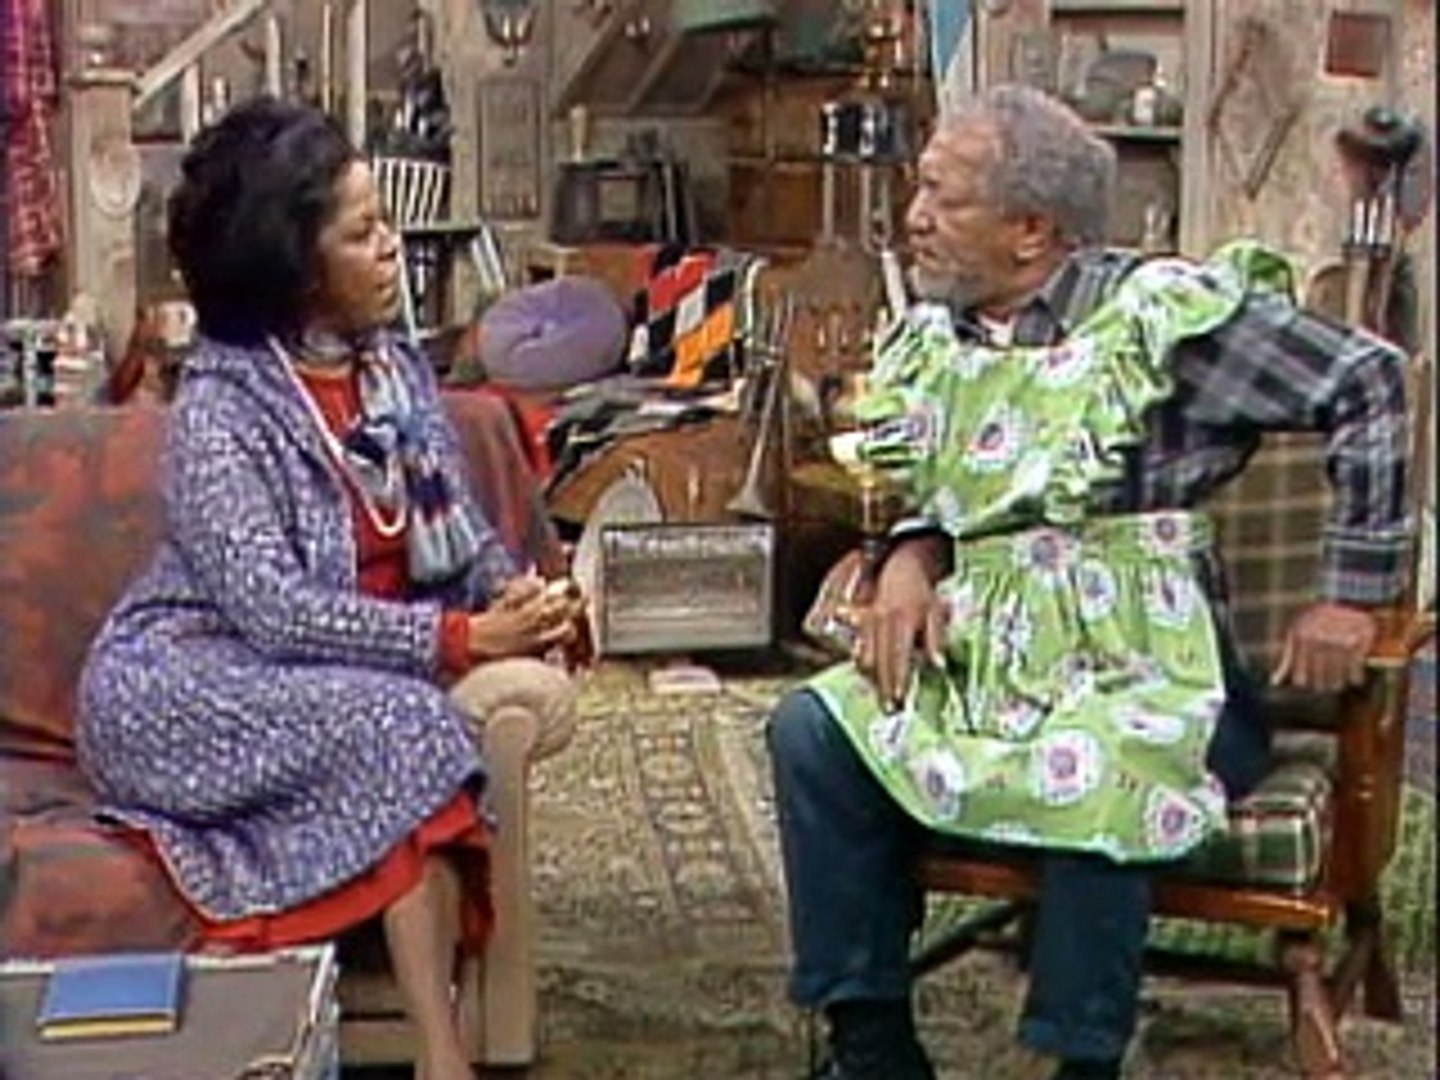 SANFORD AND SON S5 E08